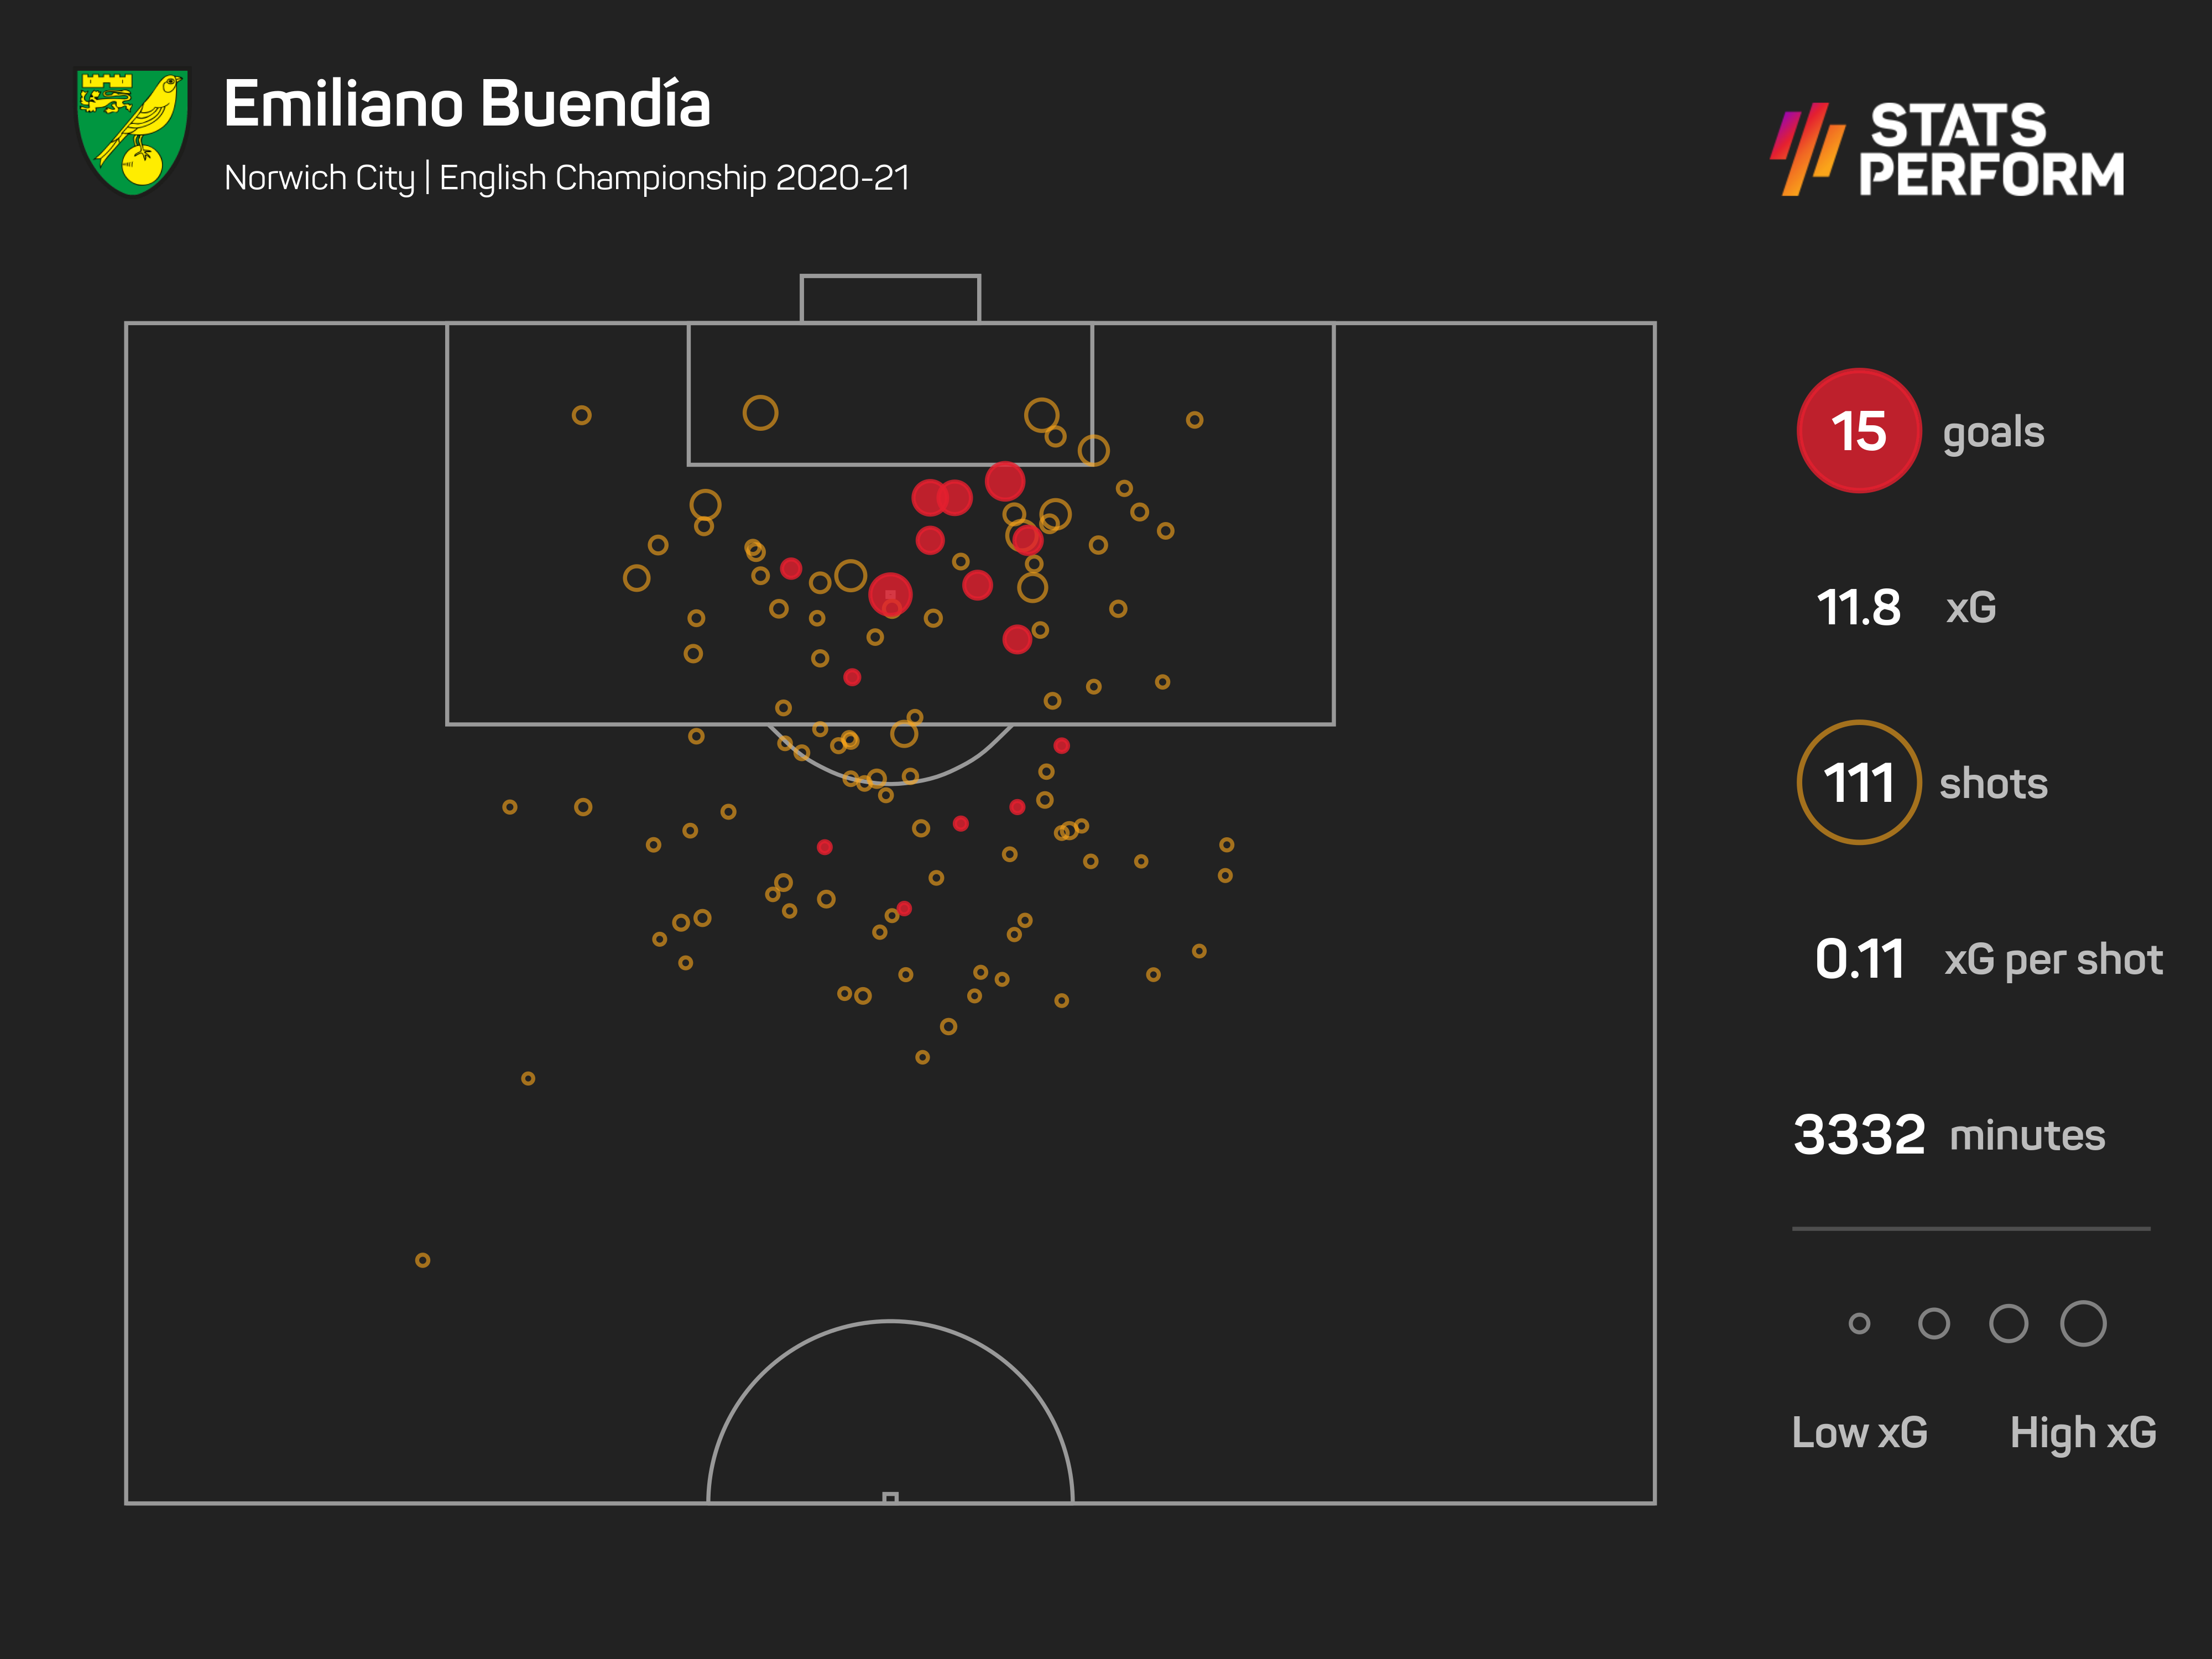 Buendia's improvement in front of goal was significant in 2020-21